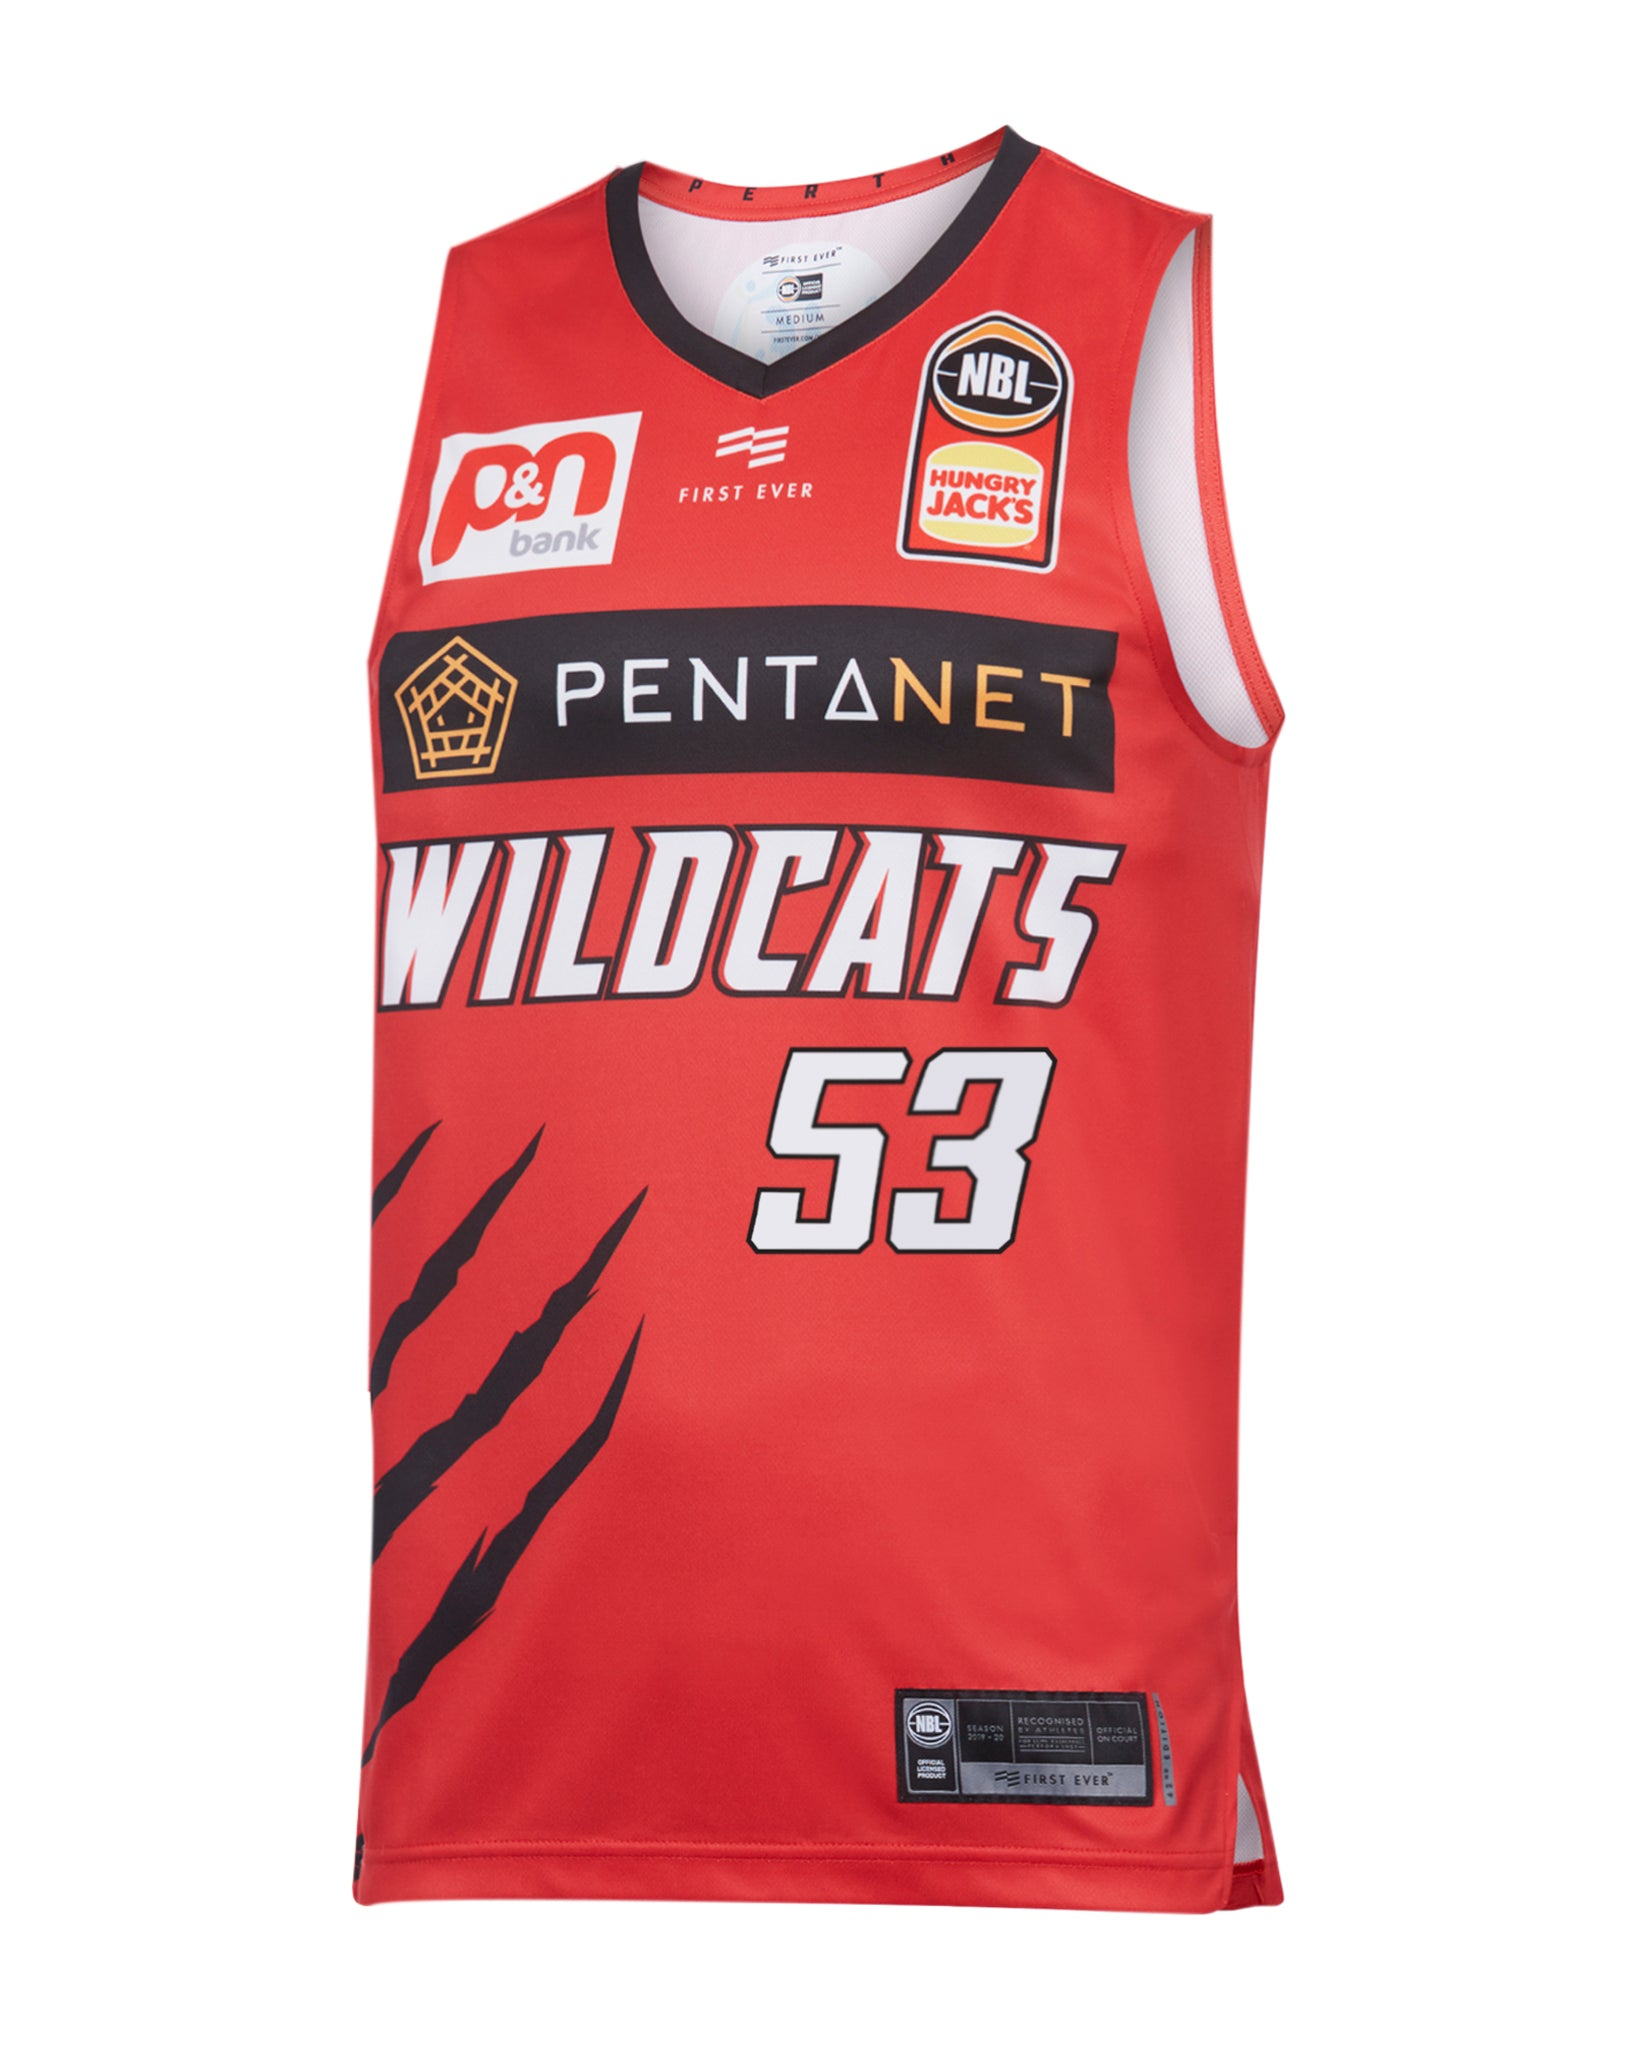 Perth Wildcats 19/20 Authentic Home Jersey - Damian Martin